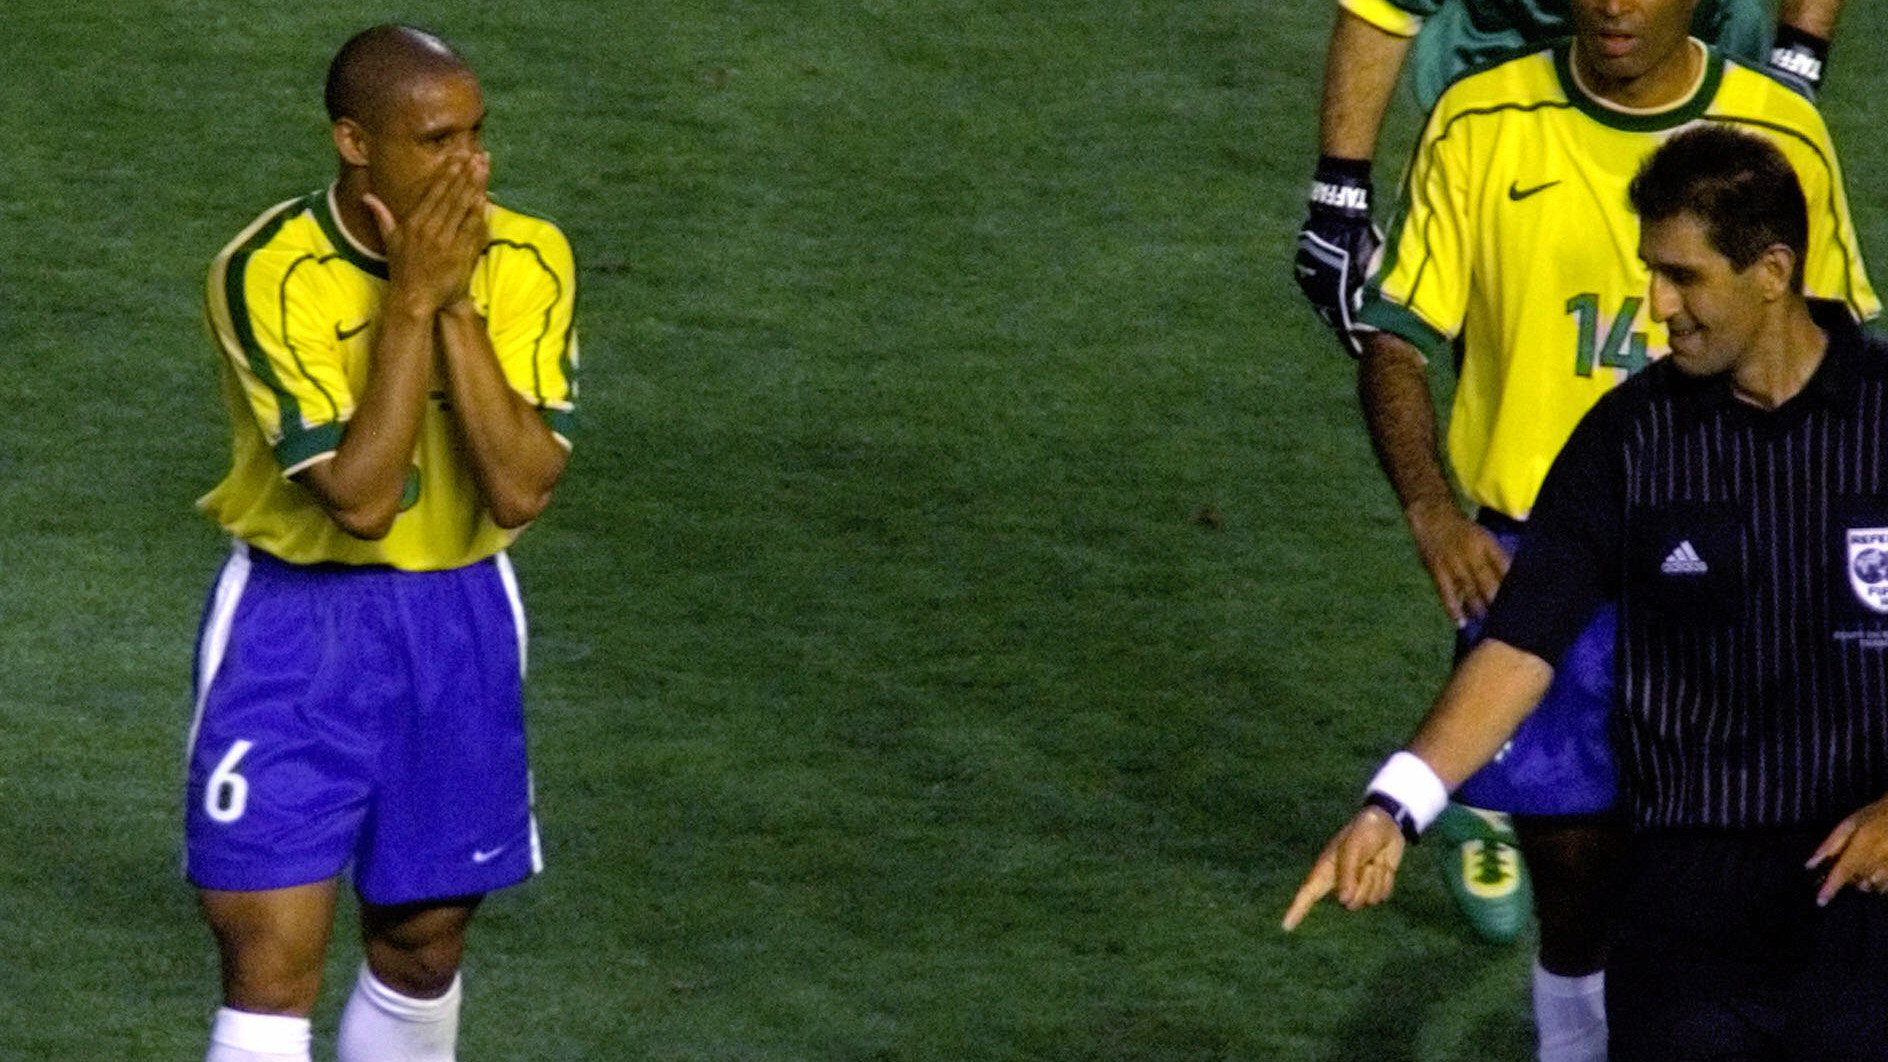 Esfandiar Baharmast, referee from the USA, points at the foul spot that led to a penalty shot for Norway as Brazil's Roberto Carlos covers his face during the Brazil vs. Norway, Group A, World Cup 98, soccer match at the Velodrome stadium in Marseille, Tuesday, June 23, 1998. The other teams in Group A are Scotland and Morocco. Norway won 2-1.